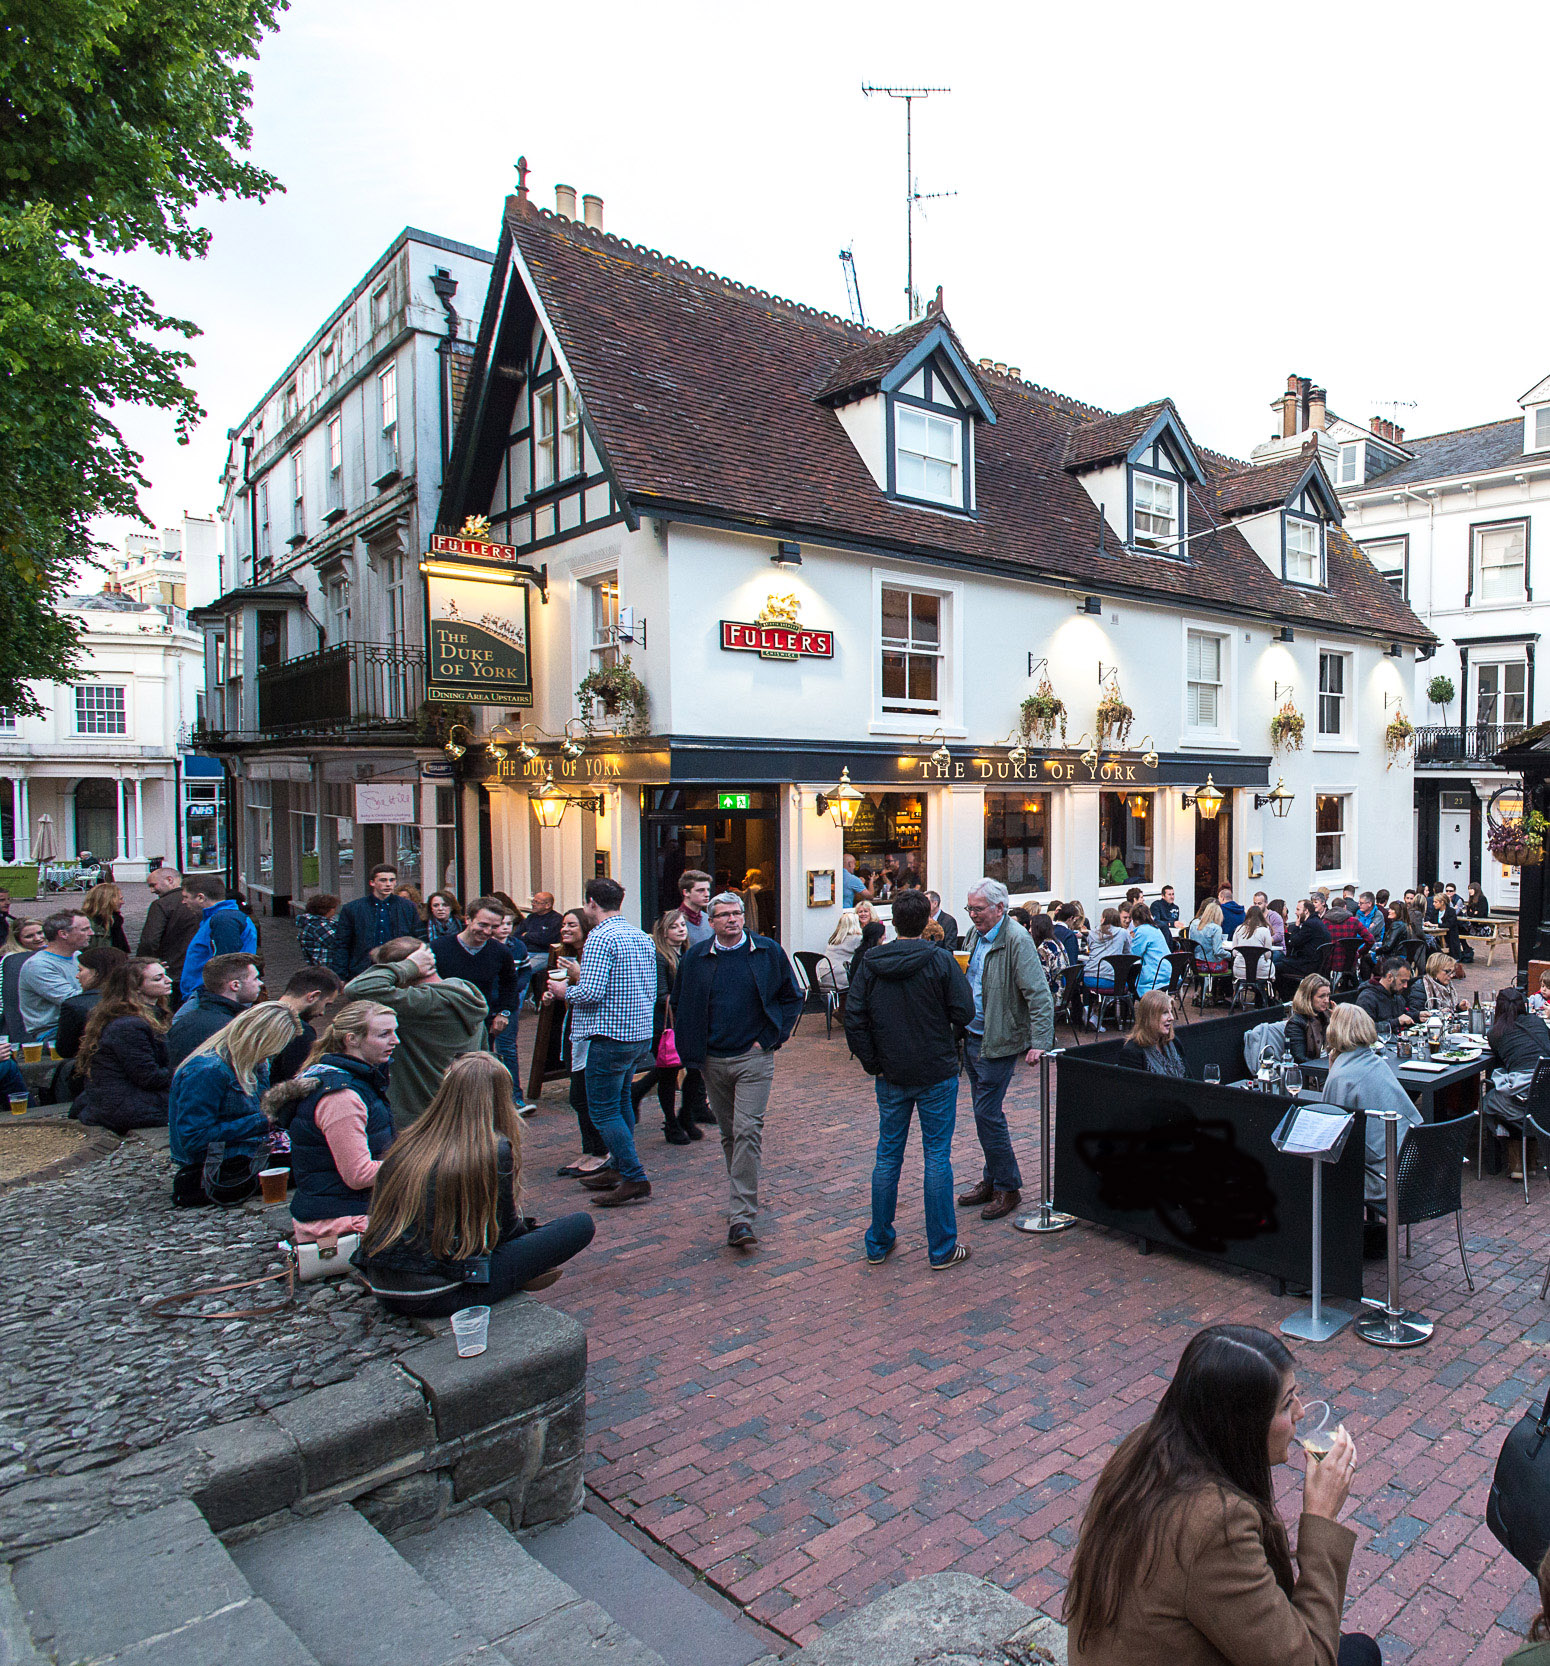 The Duke of York, Fullers Pub, The Pantiles, Royal Tunbridge Wells